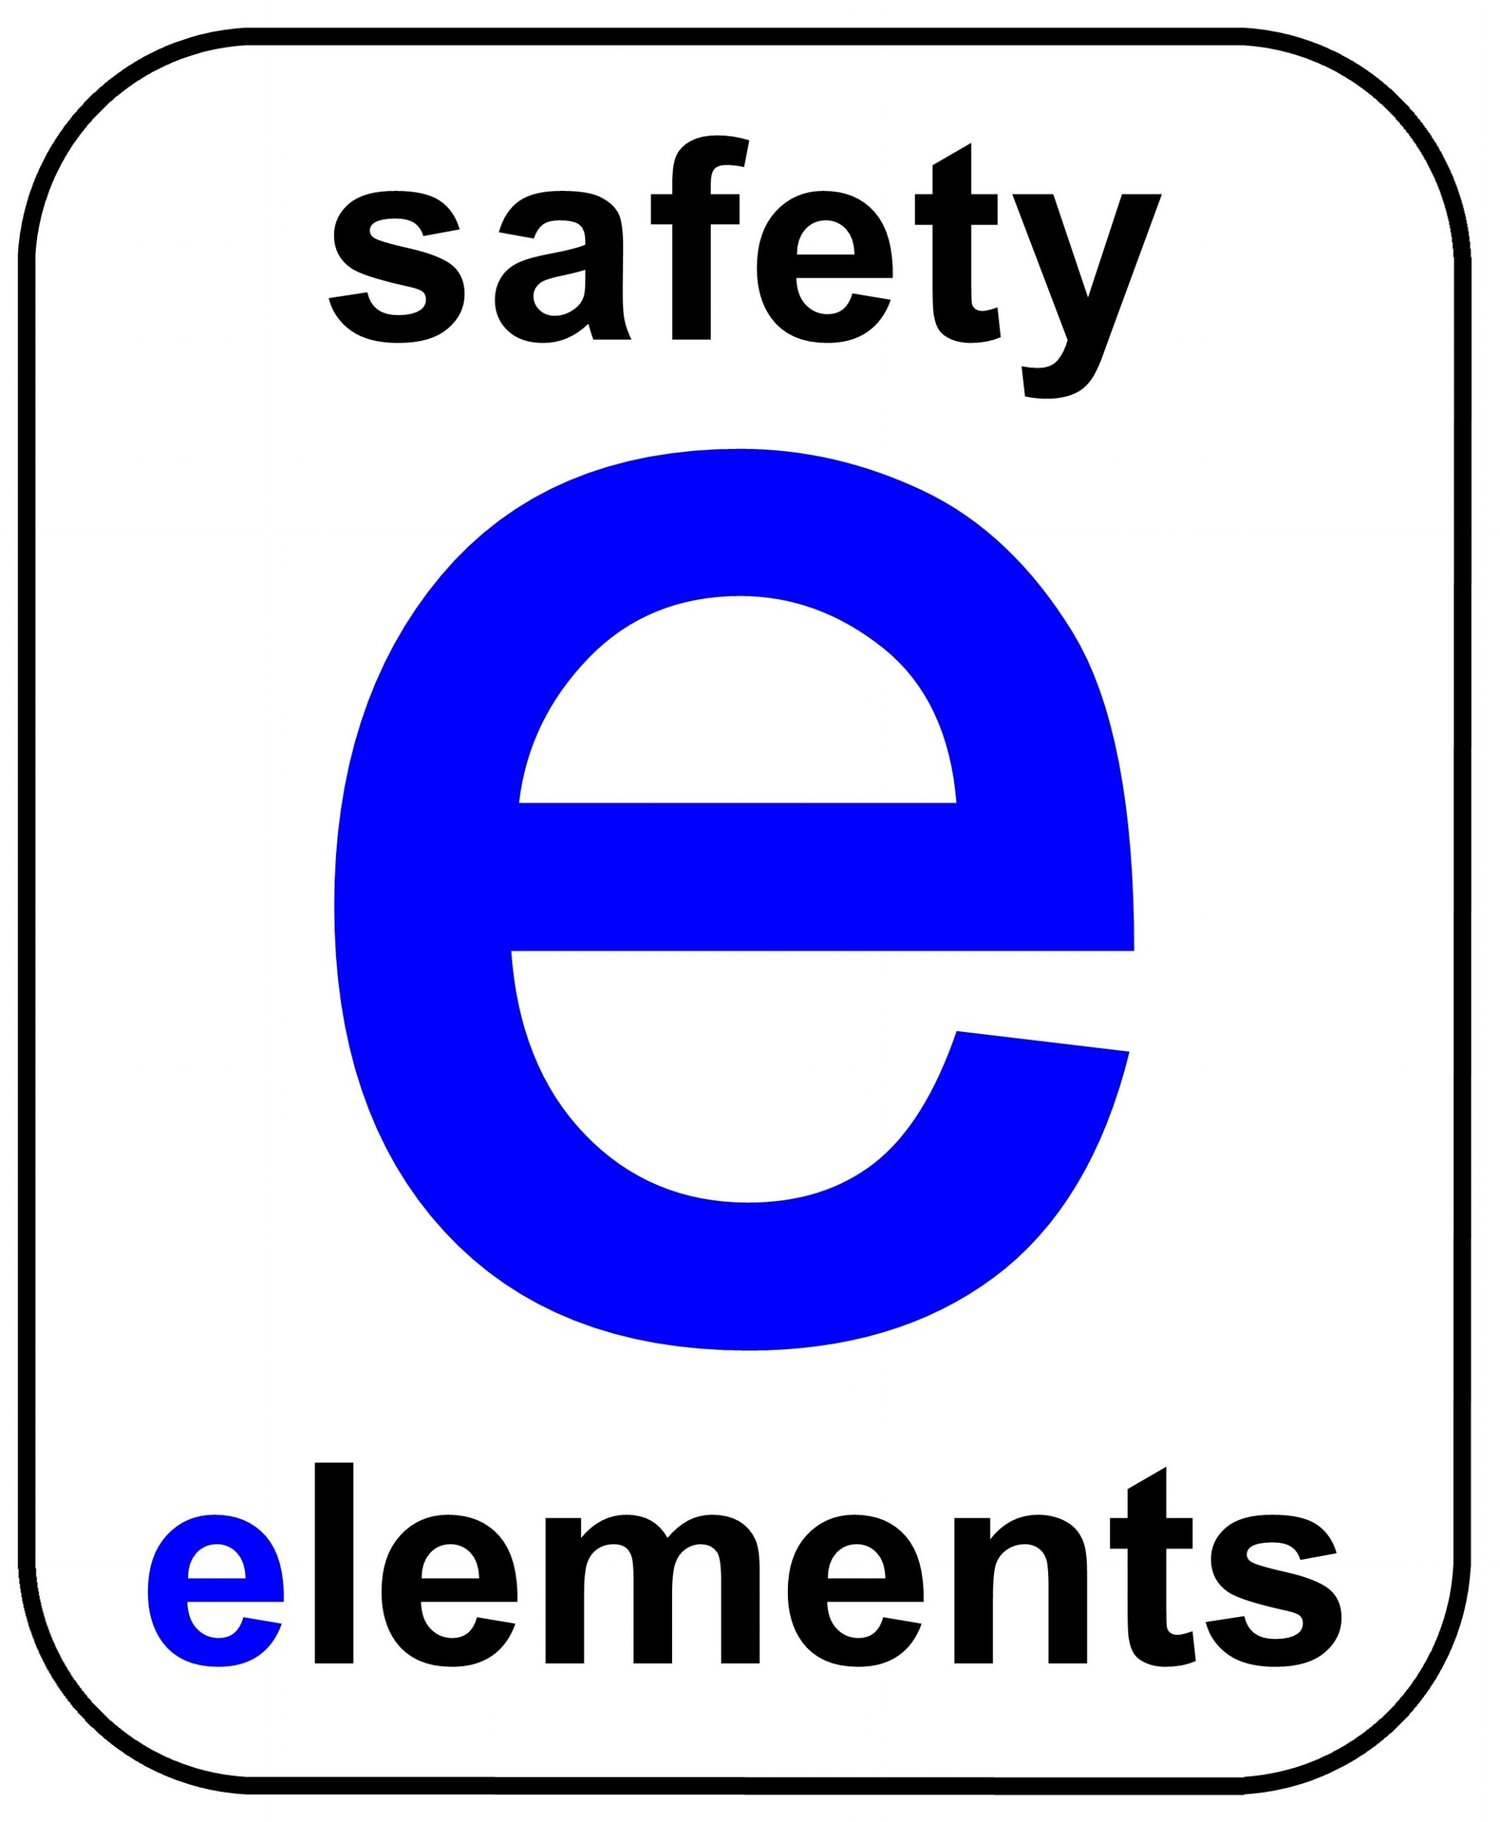 safety elements, ltd.